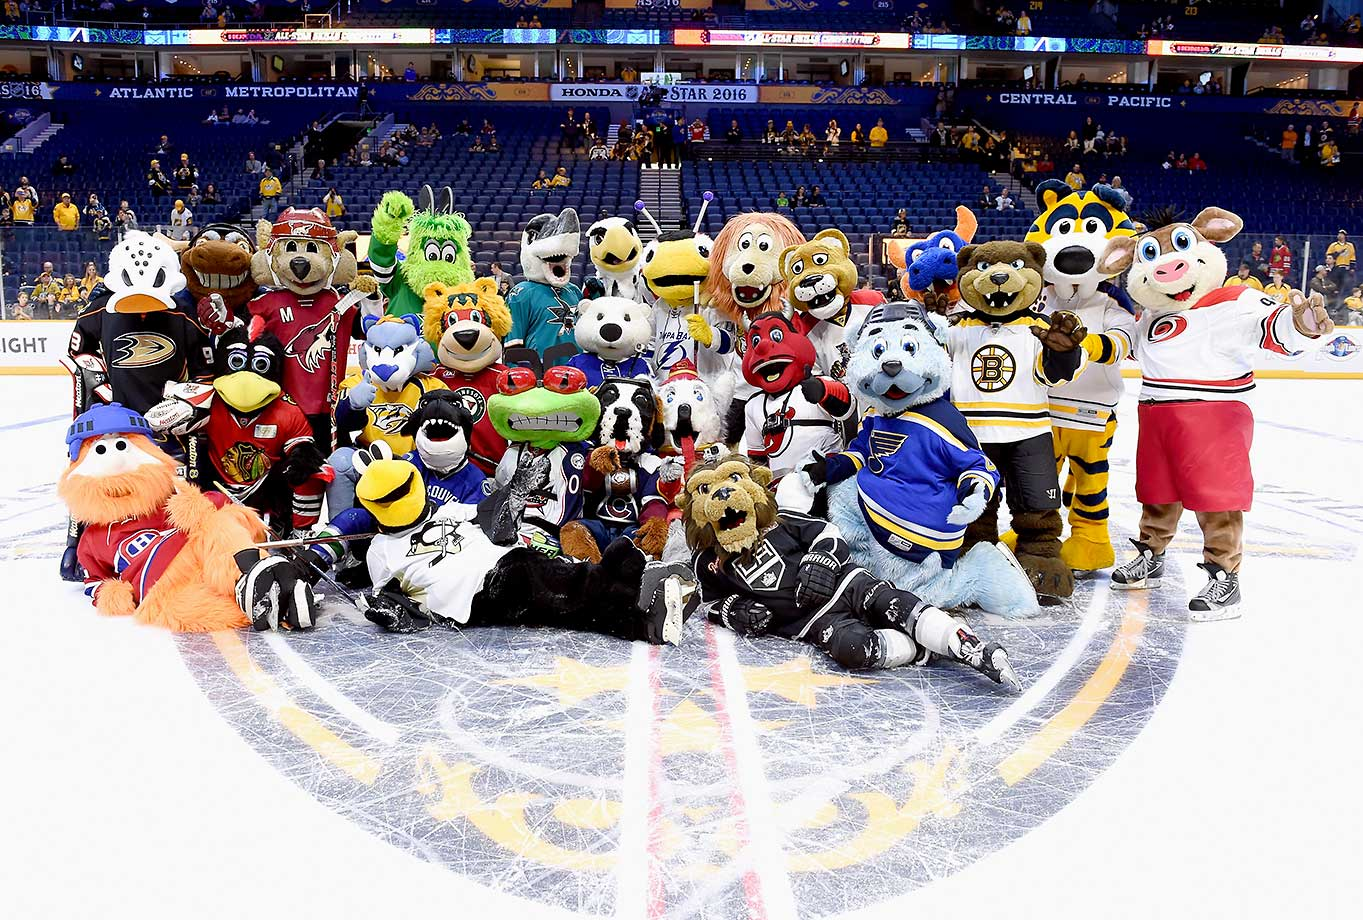 All team mascots pose for Atlantic Division All-Stars group picture after competing in the Mascot Game 2016 as part of the 2016 NHL All-Star Weekend at Bridgestone Arena in Nashville, Tenn.